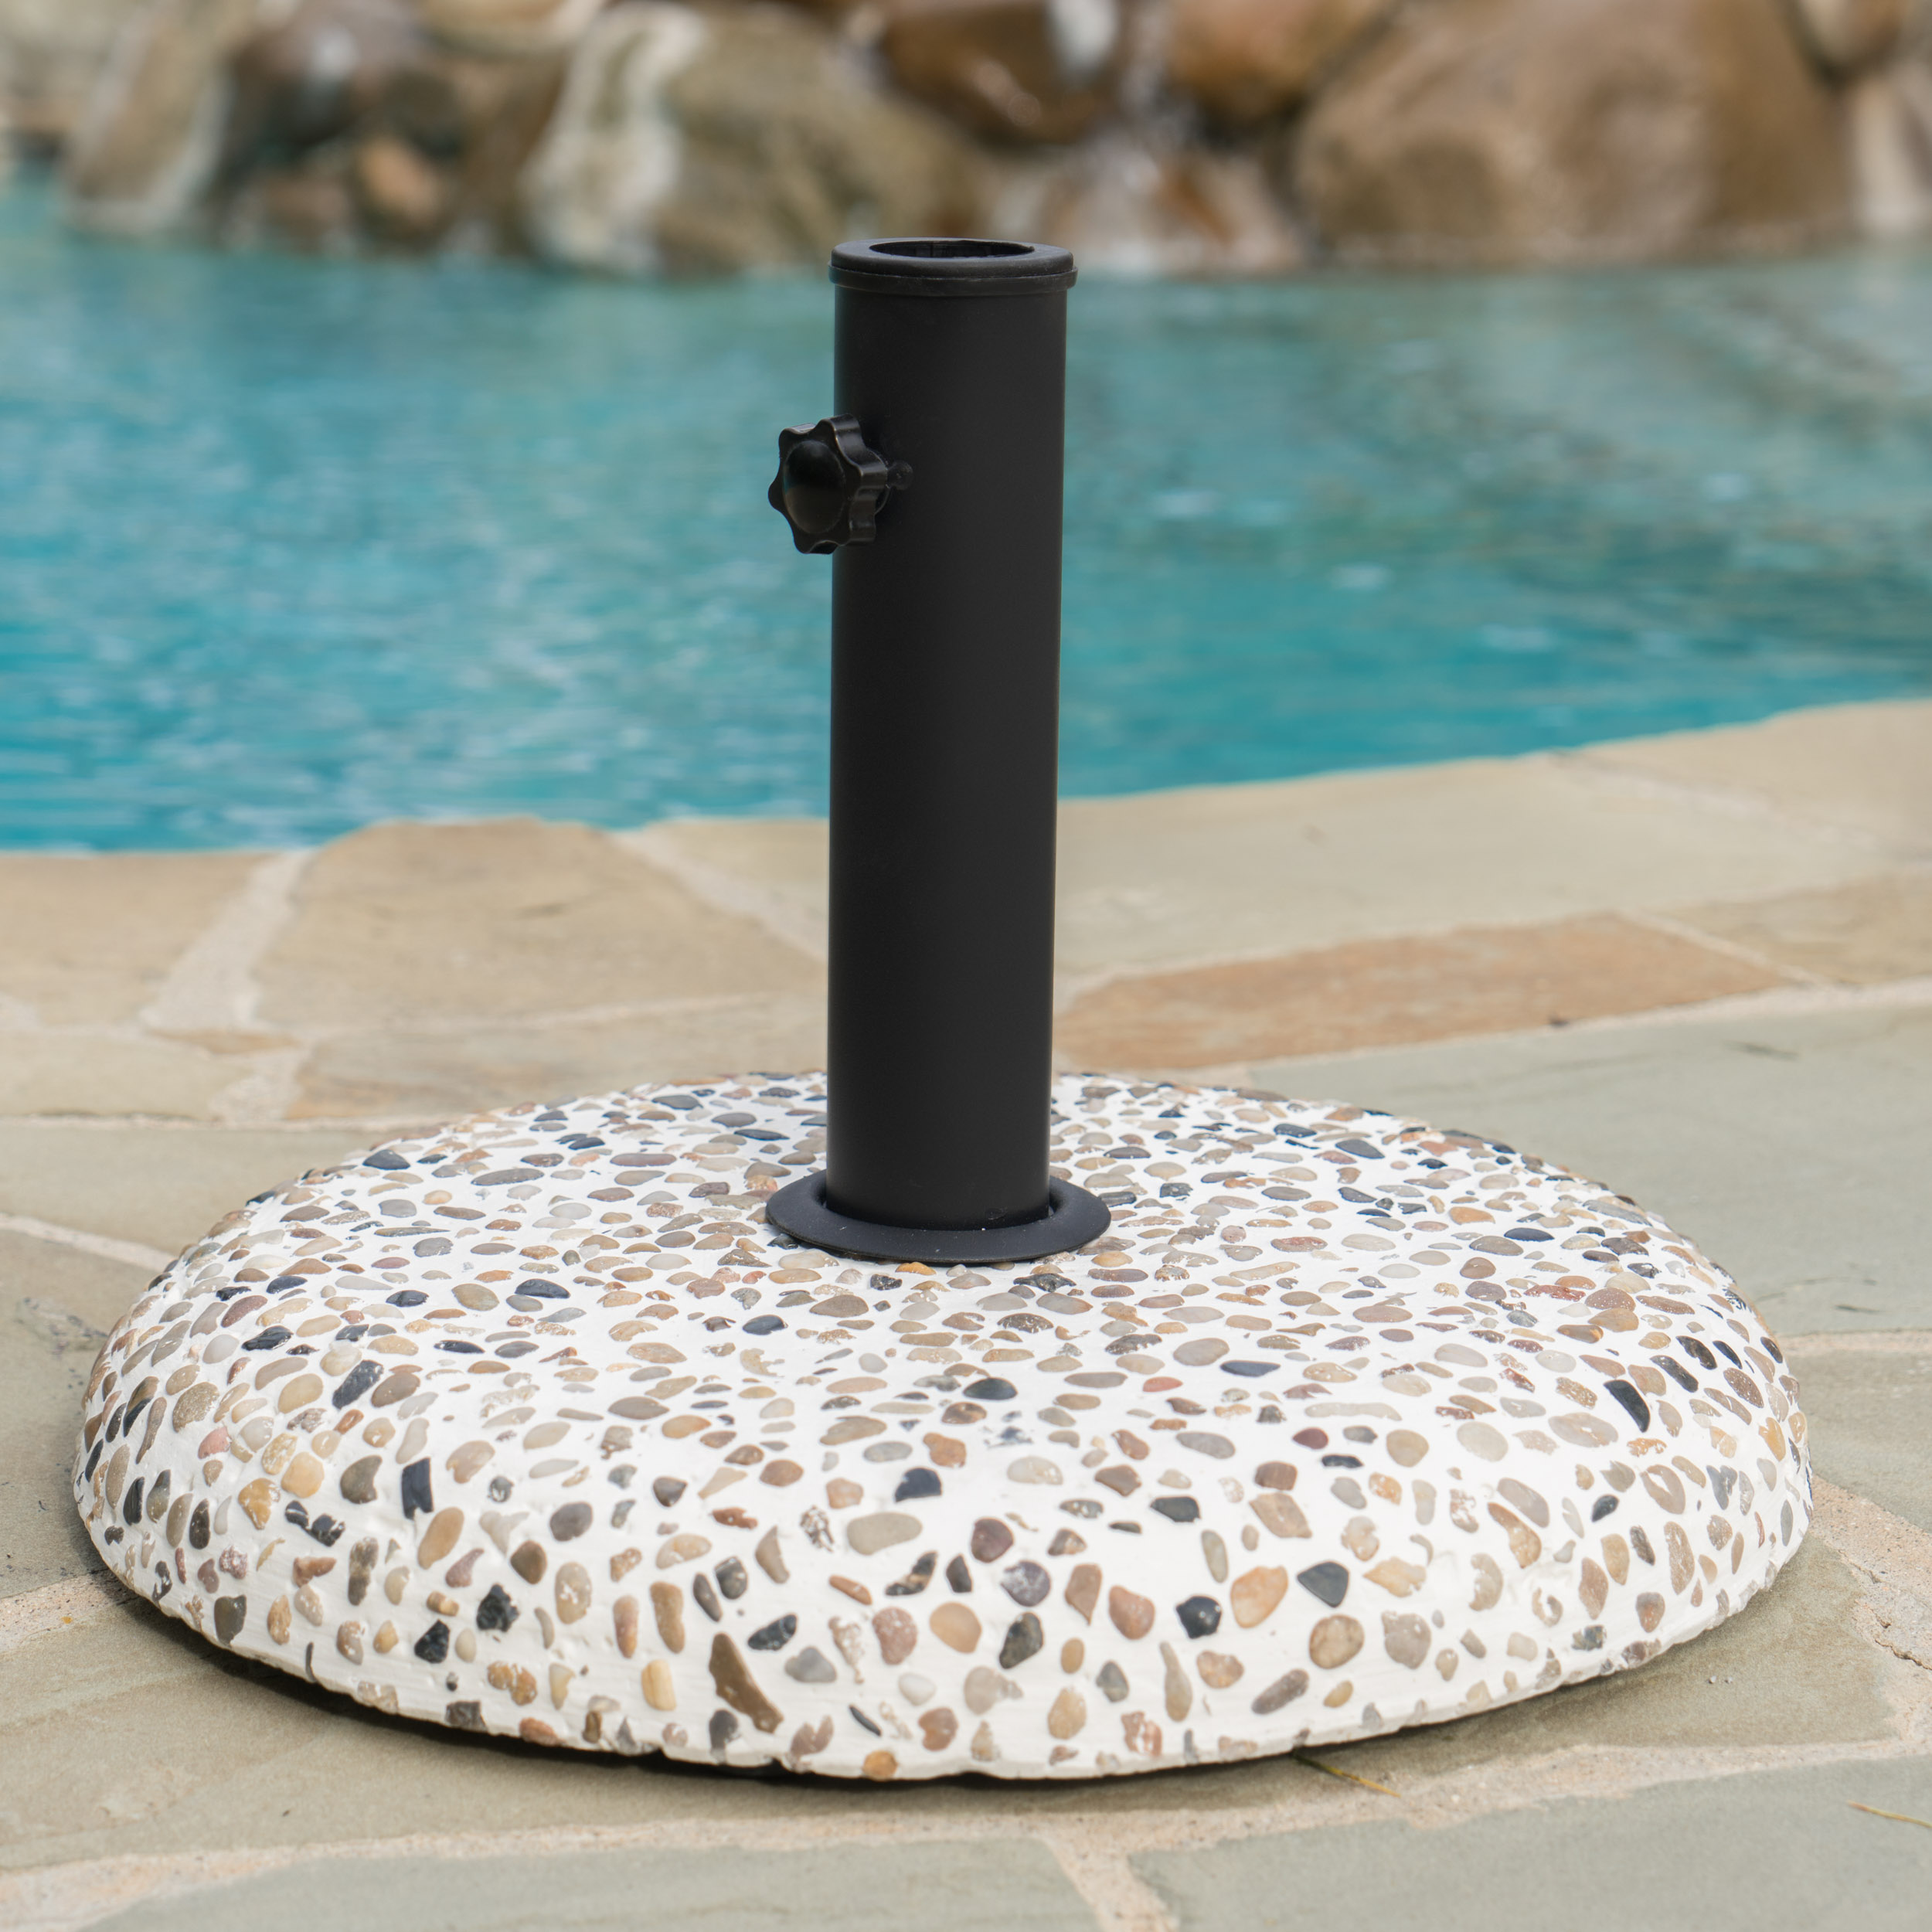 Negev Outdoor Concrete and Black Steel Umbrella Base, Colorful Stone